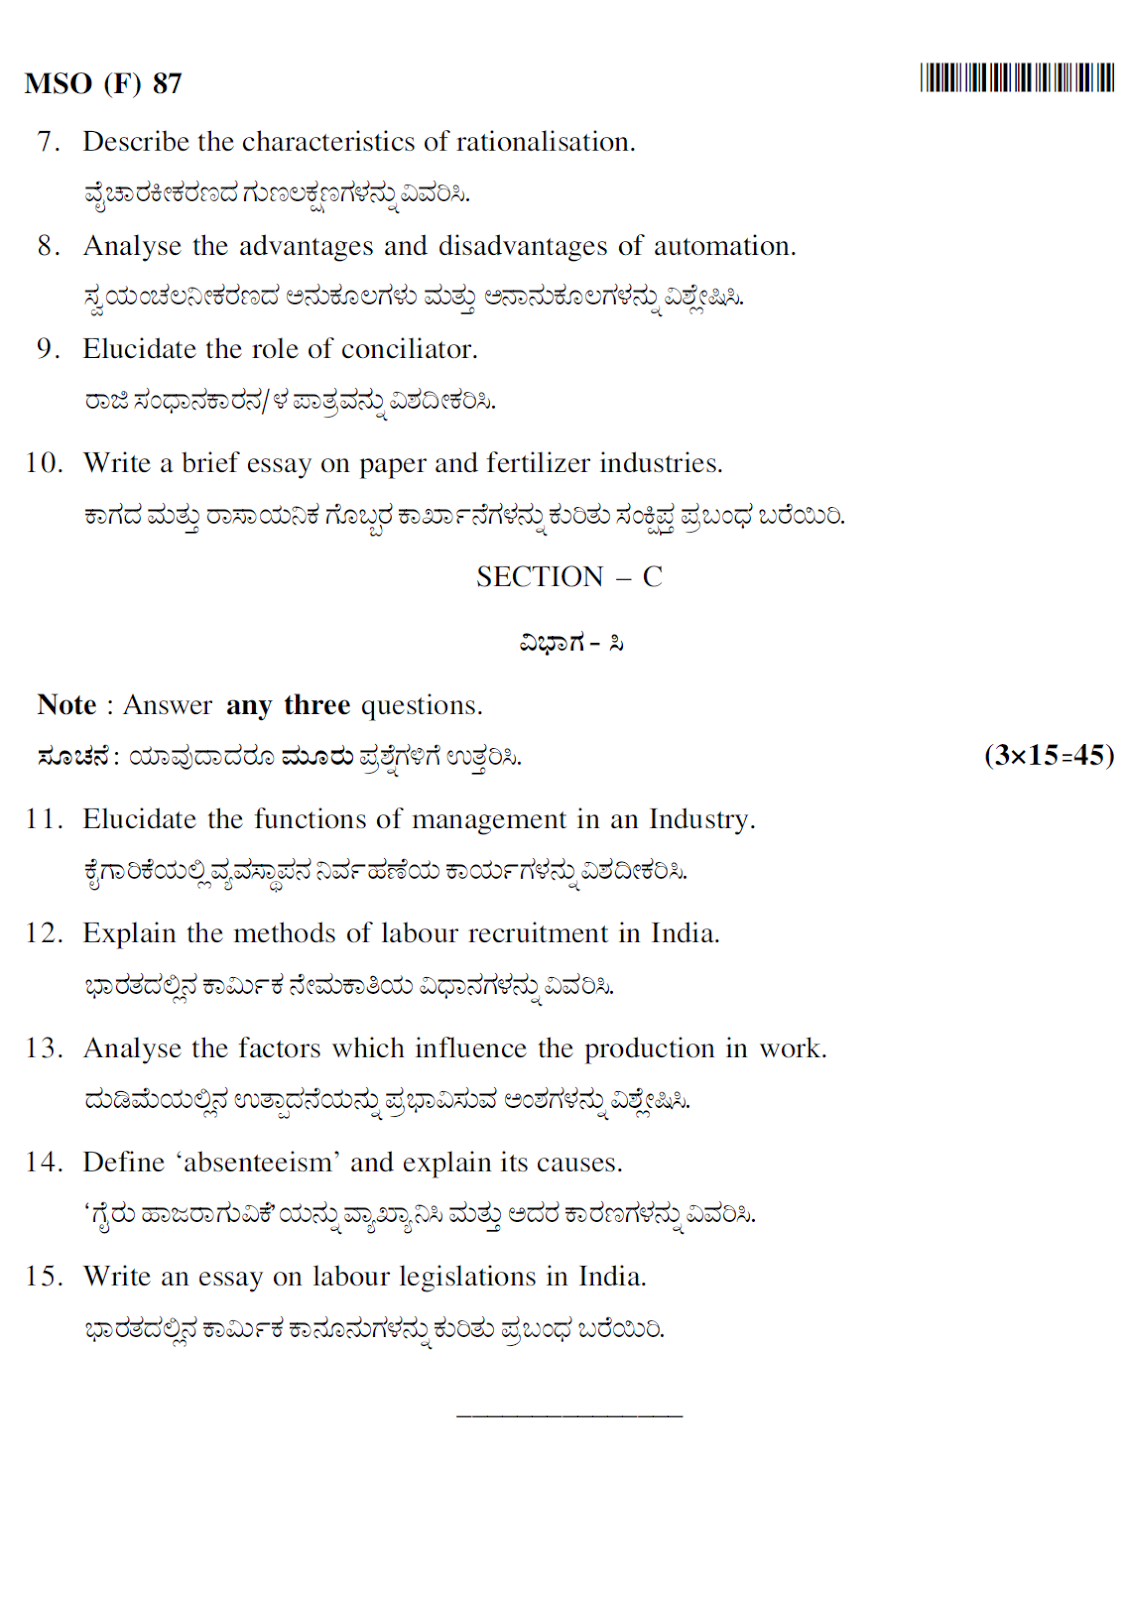 Commercial Contracts. Can someone answer this question for me? Its for a Commercial Contracts University paper?